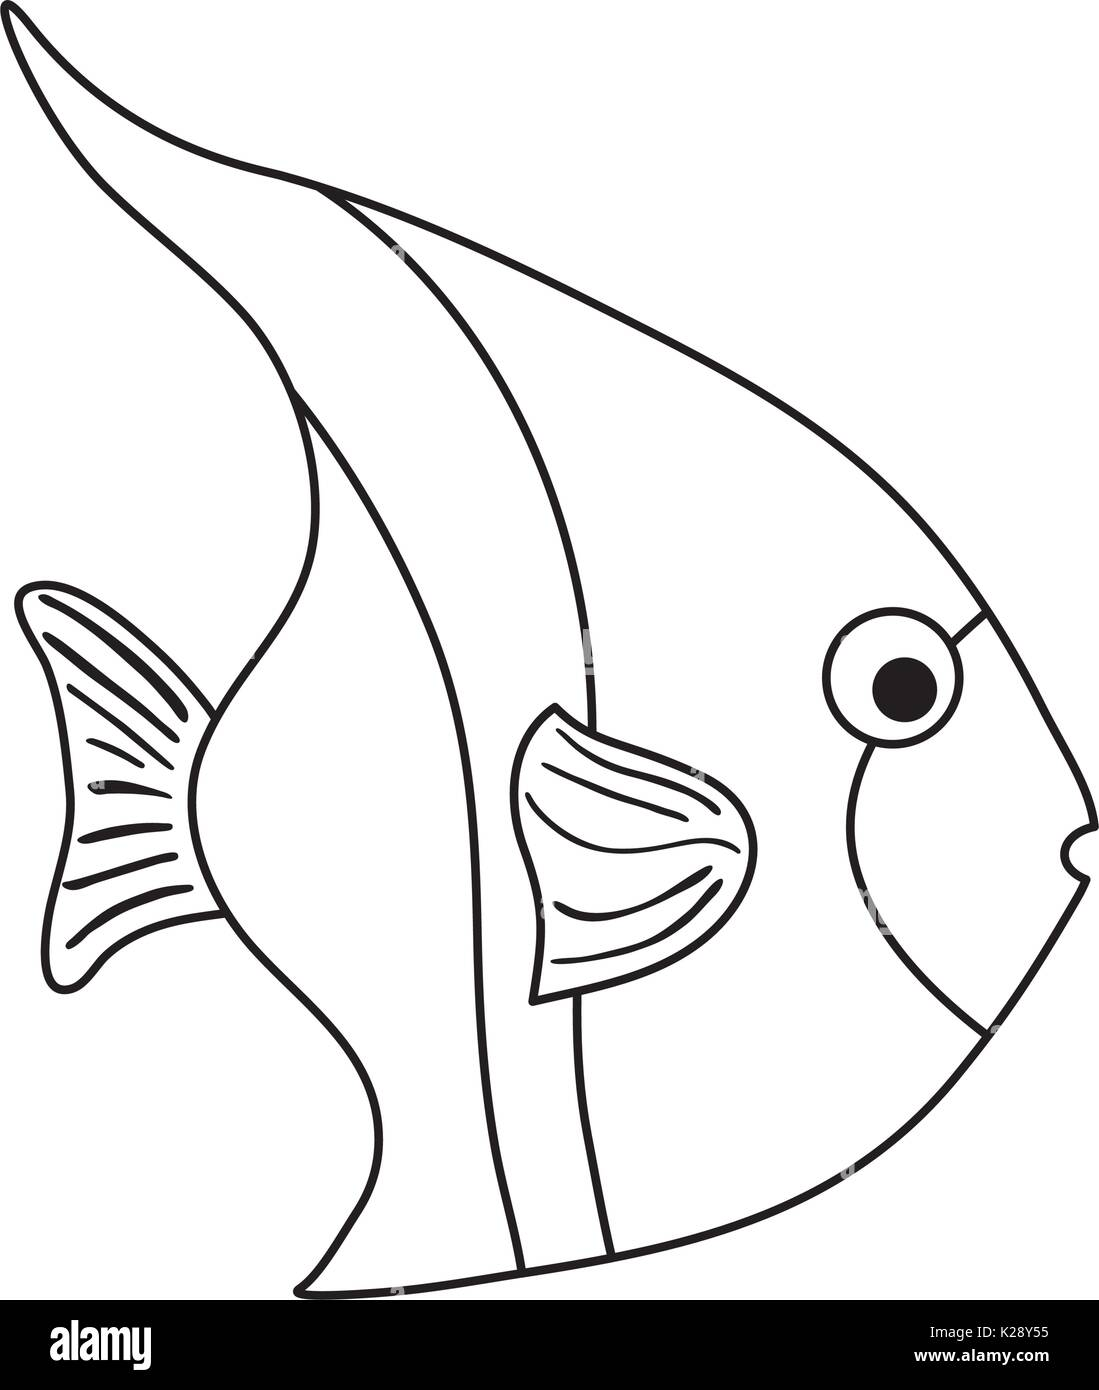 Cute fish cartoon stock image